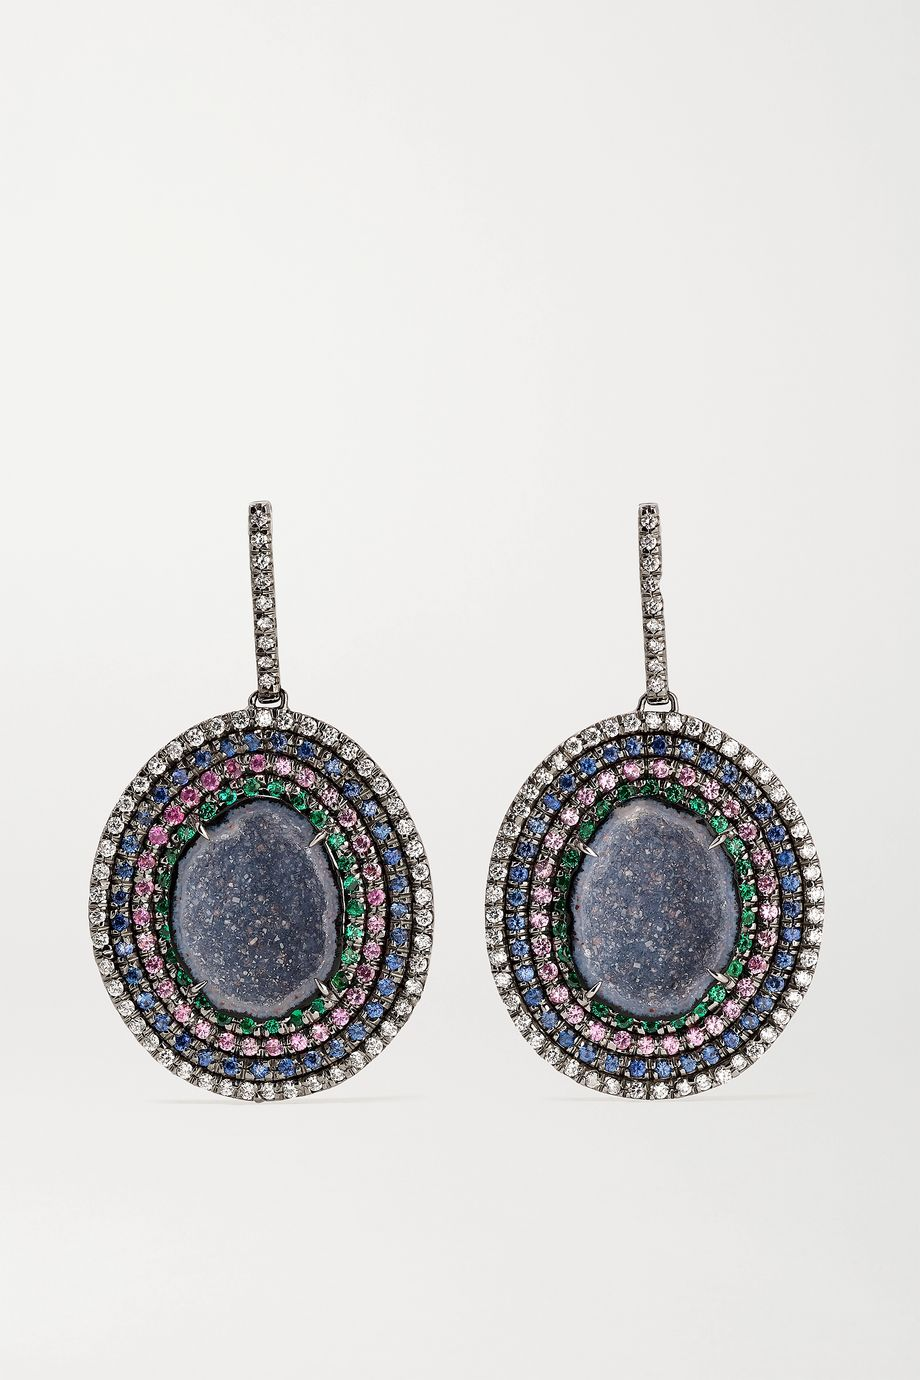 Kimberly McDonald 18-karat blackened white gold multi-stone earrings